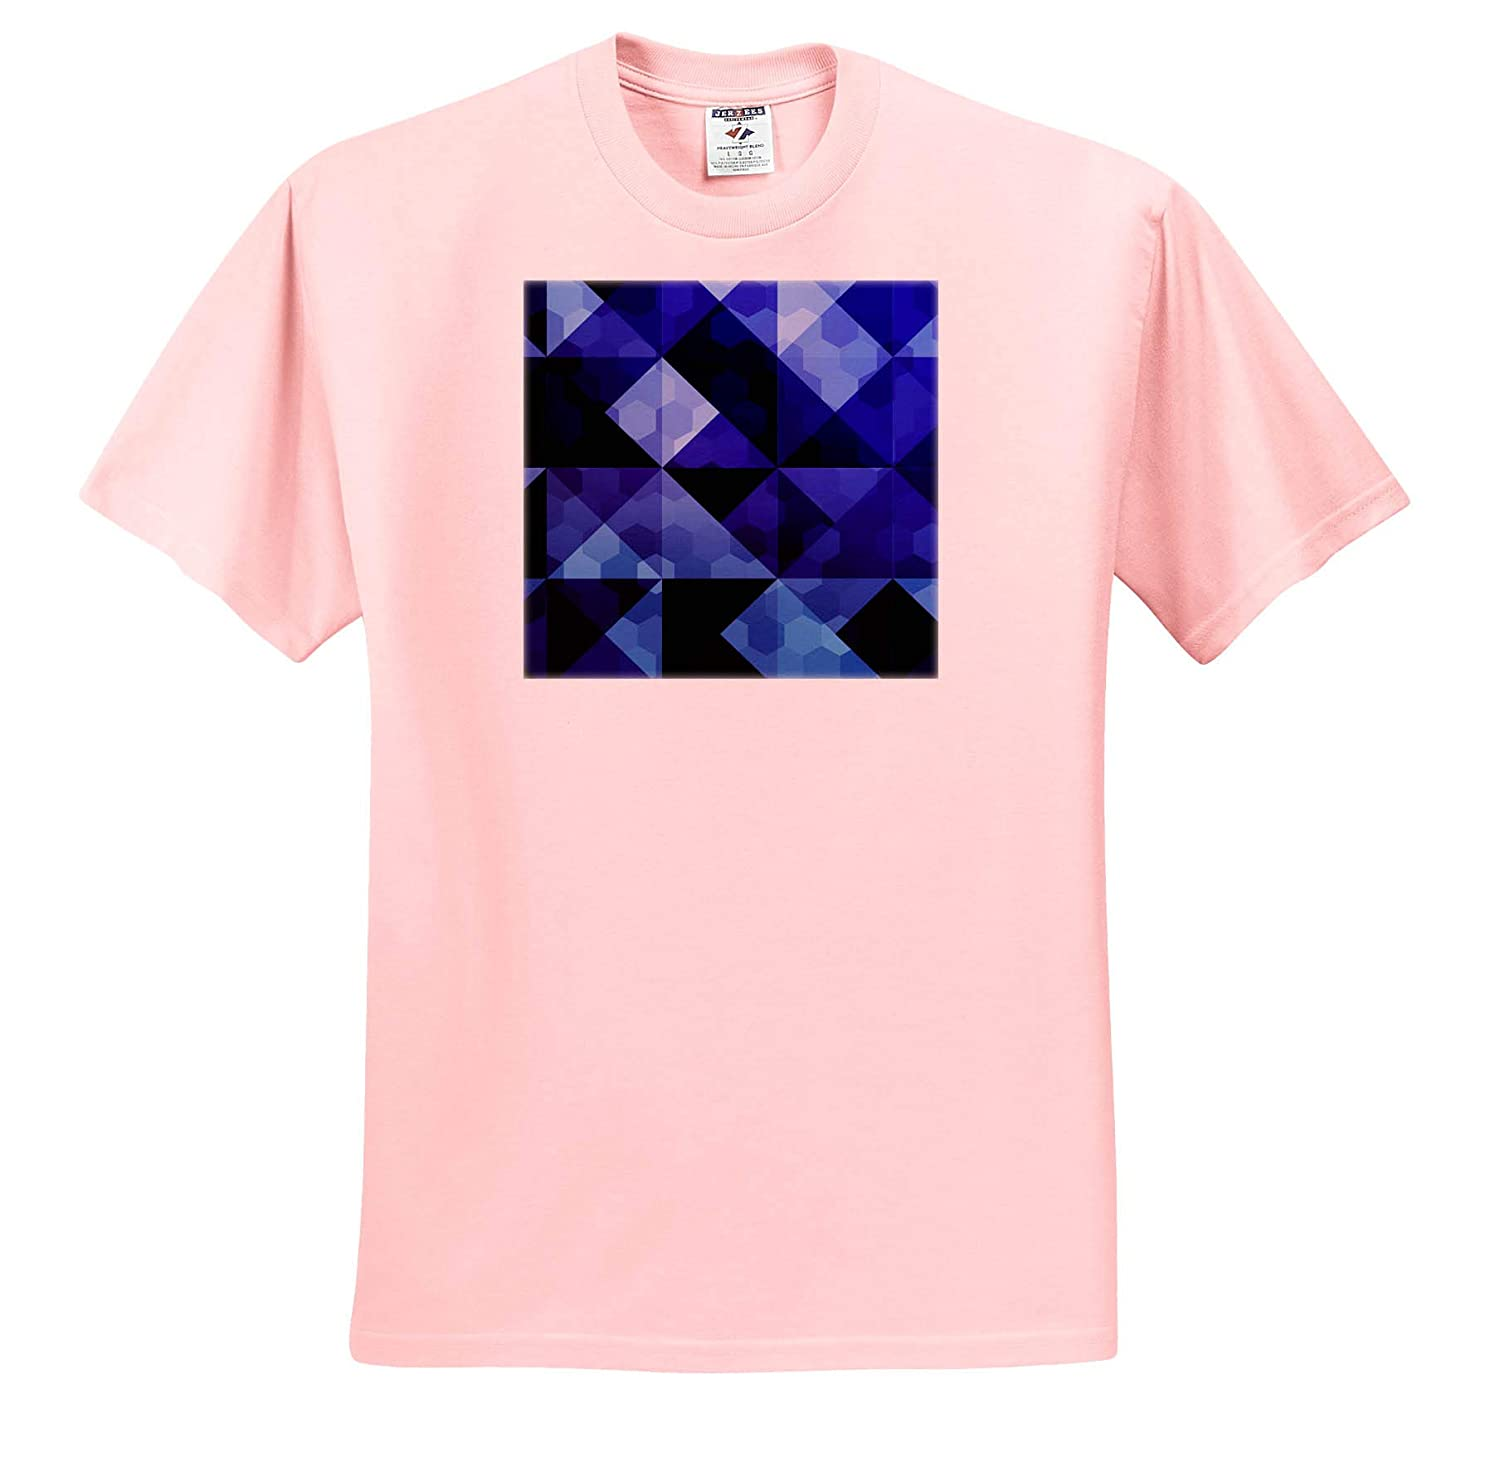 3dRose Sven Herkenrath Art Art of Mosaic Design in Blue and Dark Colors Style Gift T-Shirts